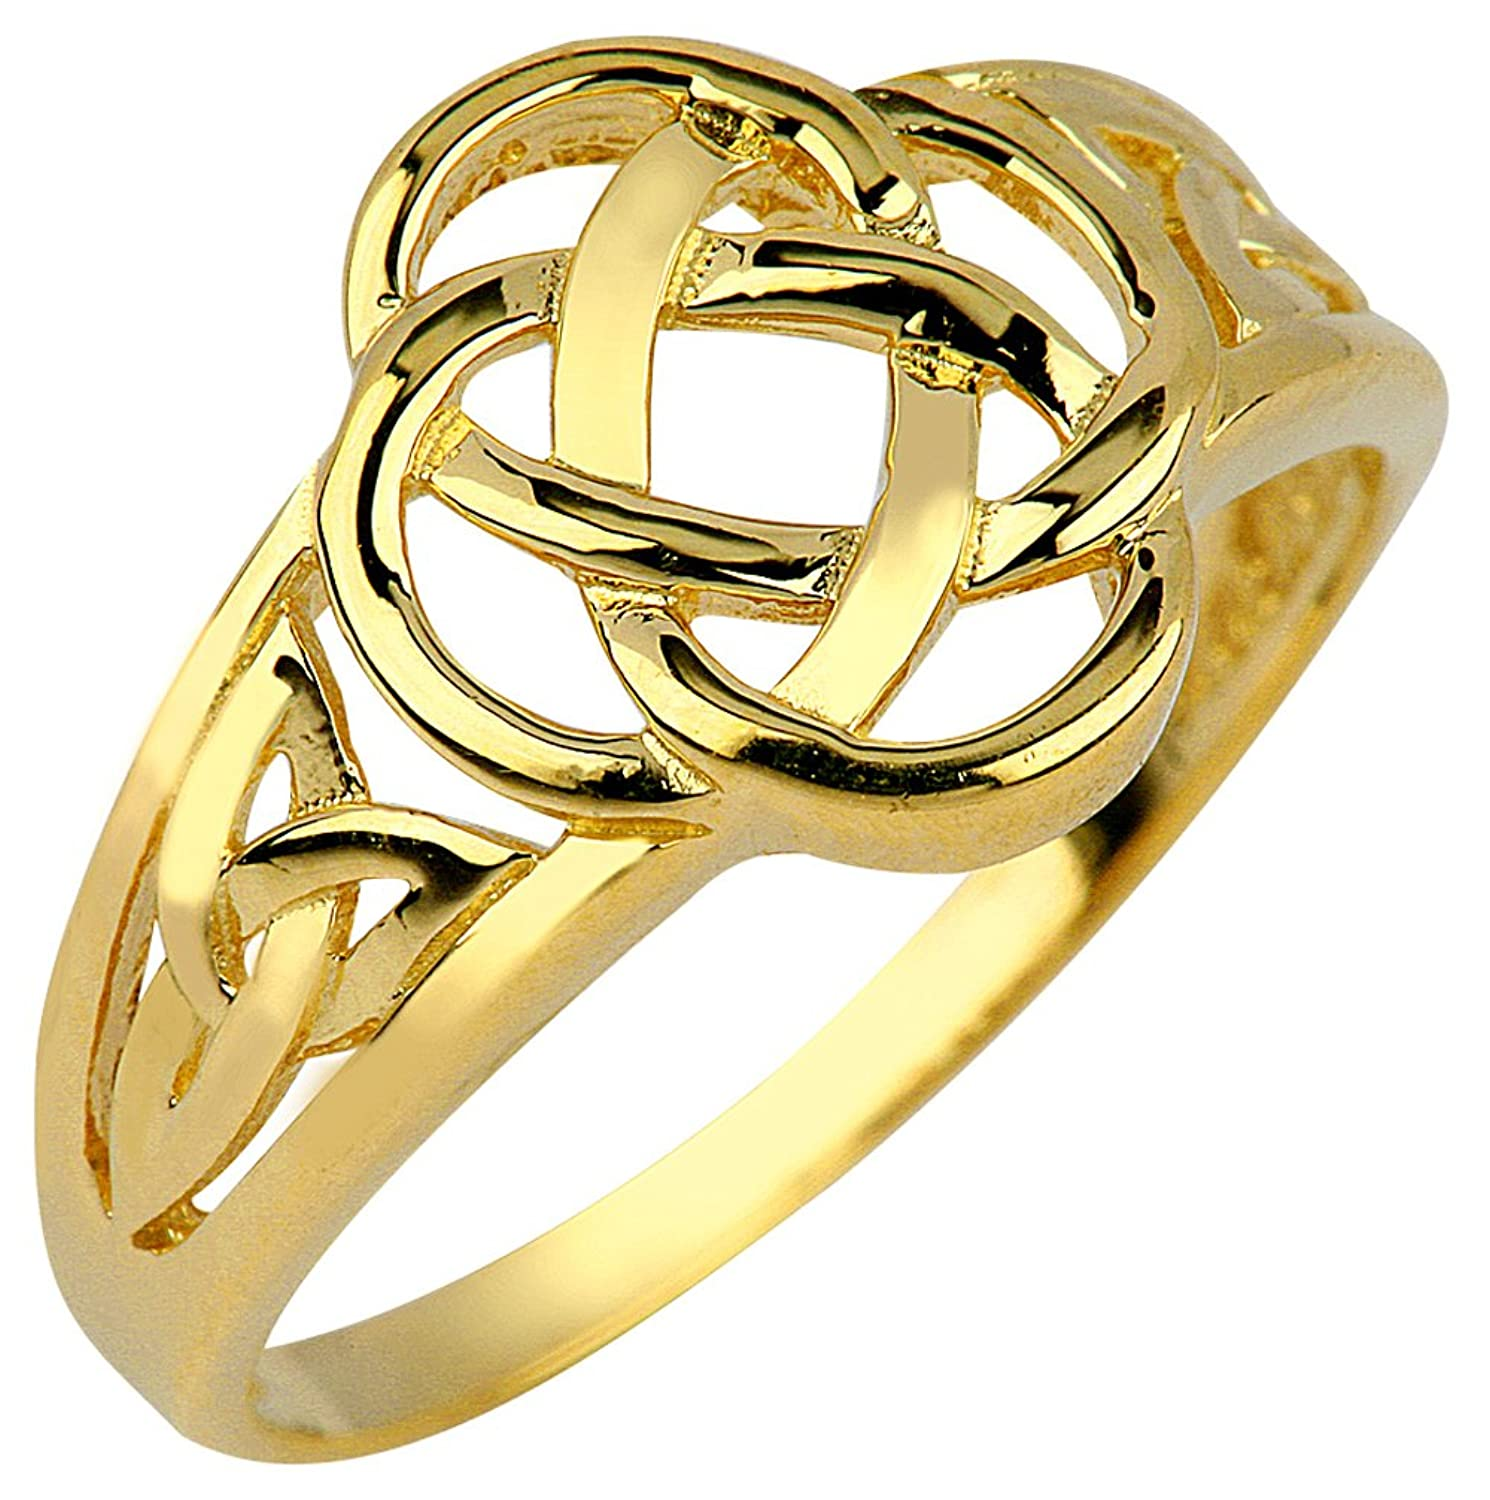 patrick religious sculpted ring burt designs jewelry gold gallery for catholics rings